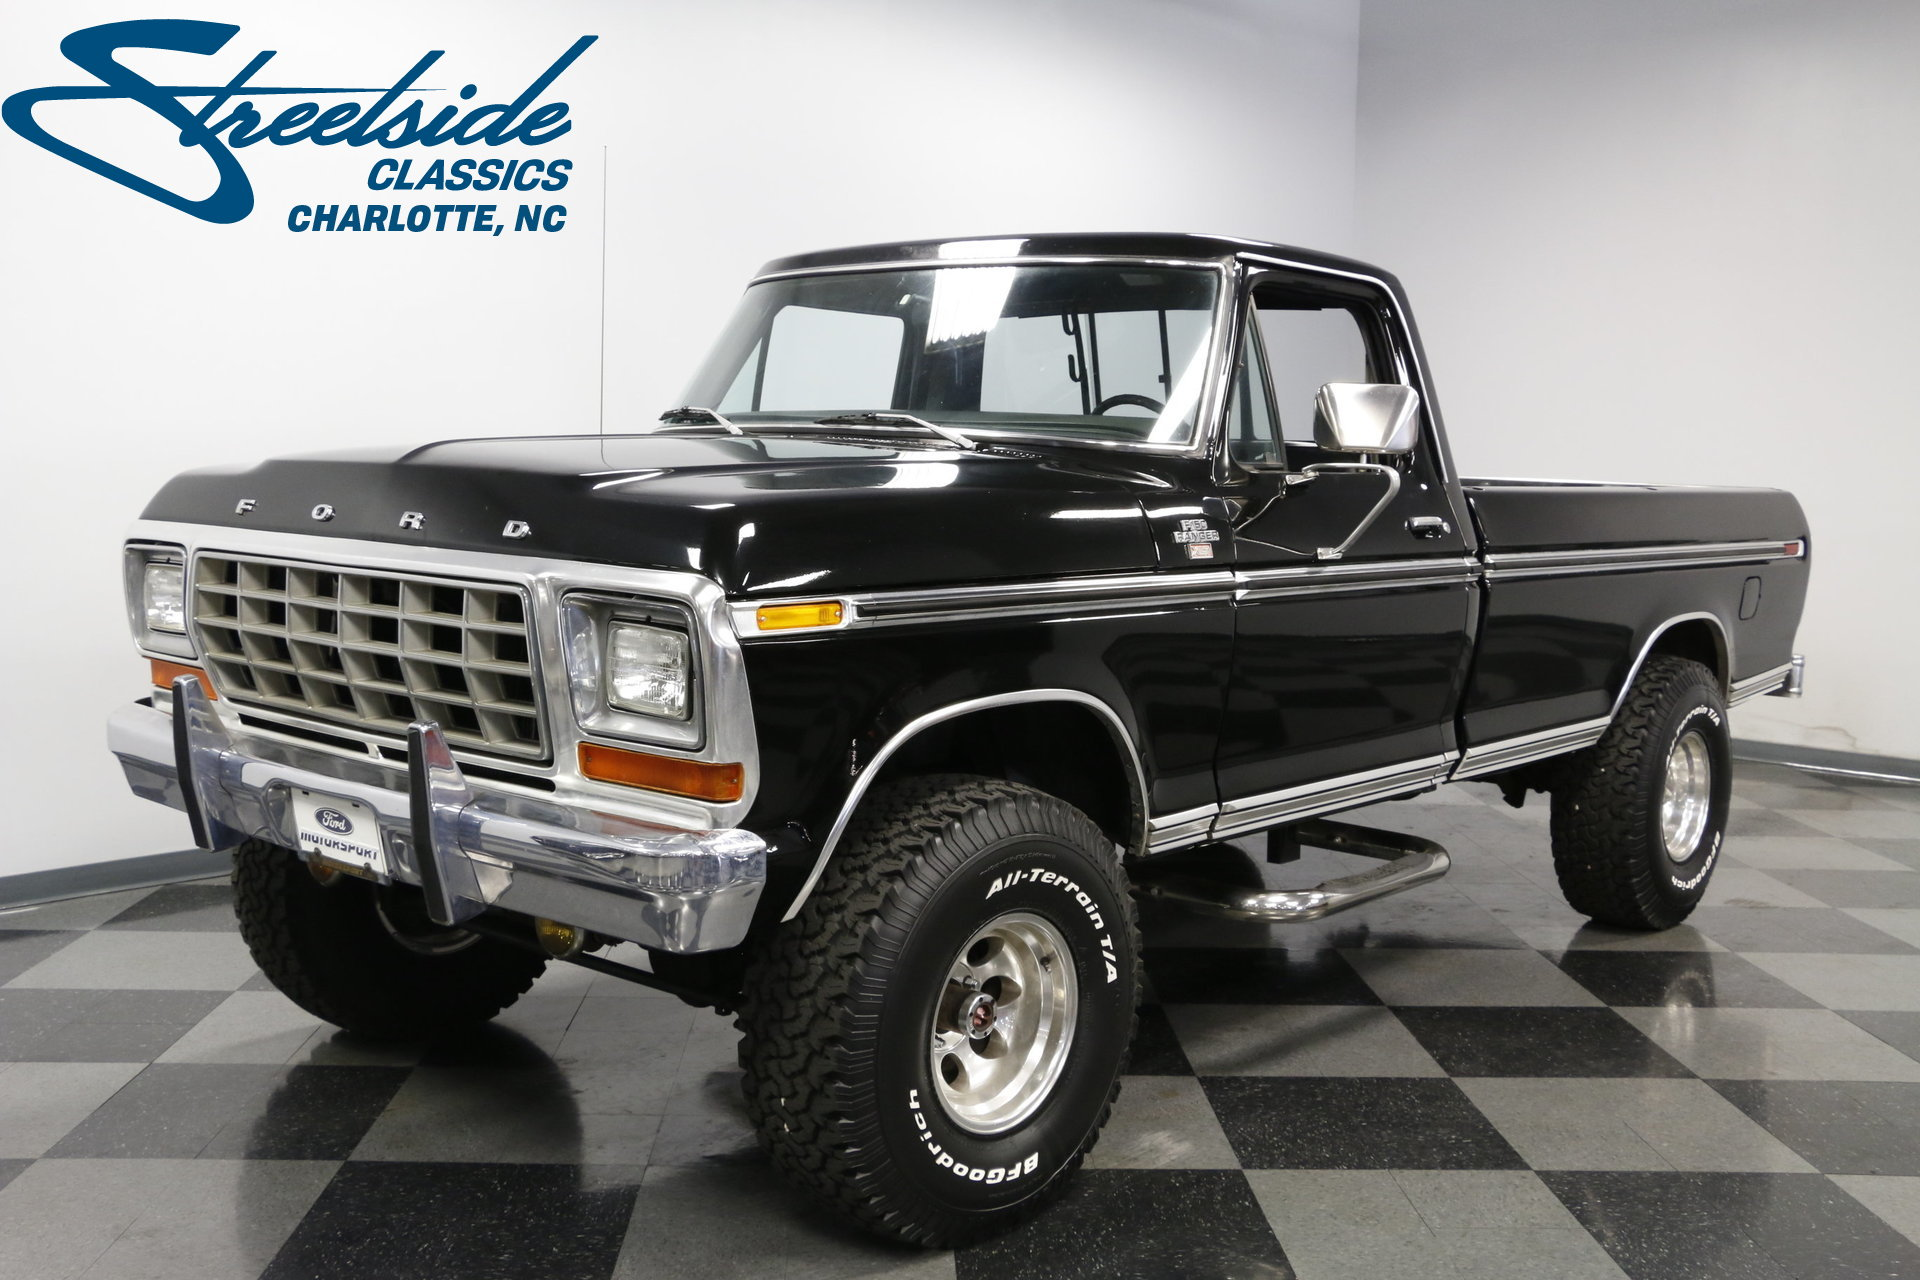 Ford Fort Worth >> 1979 Ford F-150 | Streetside Classics - The Nation's Trusted Classic Car Consignment Dealer